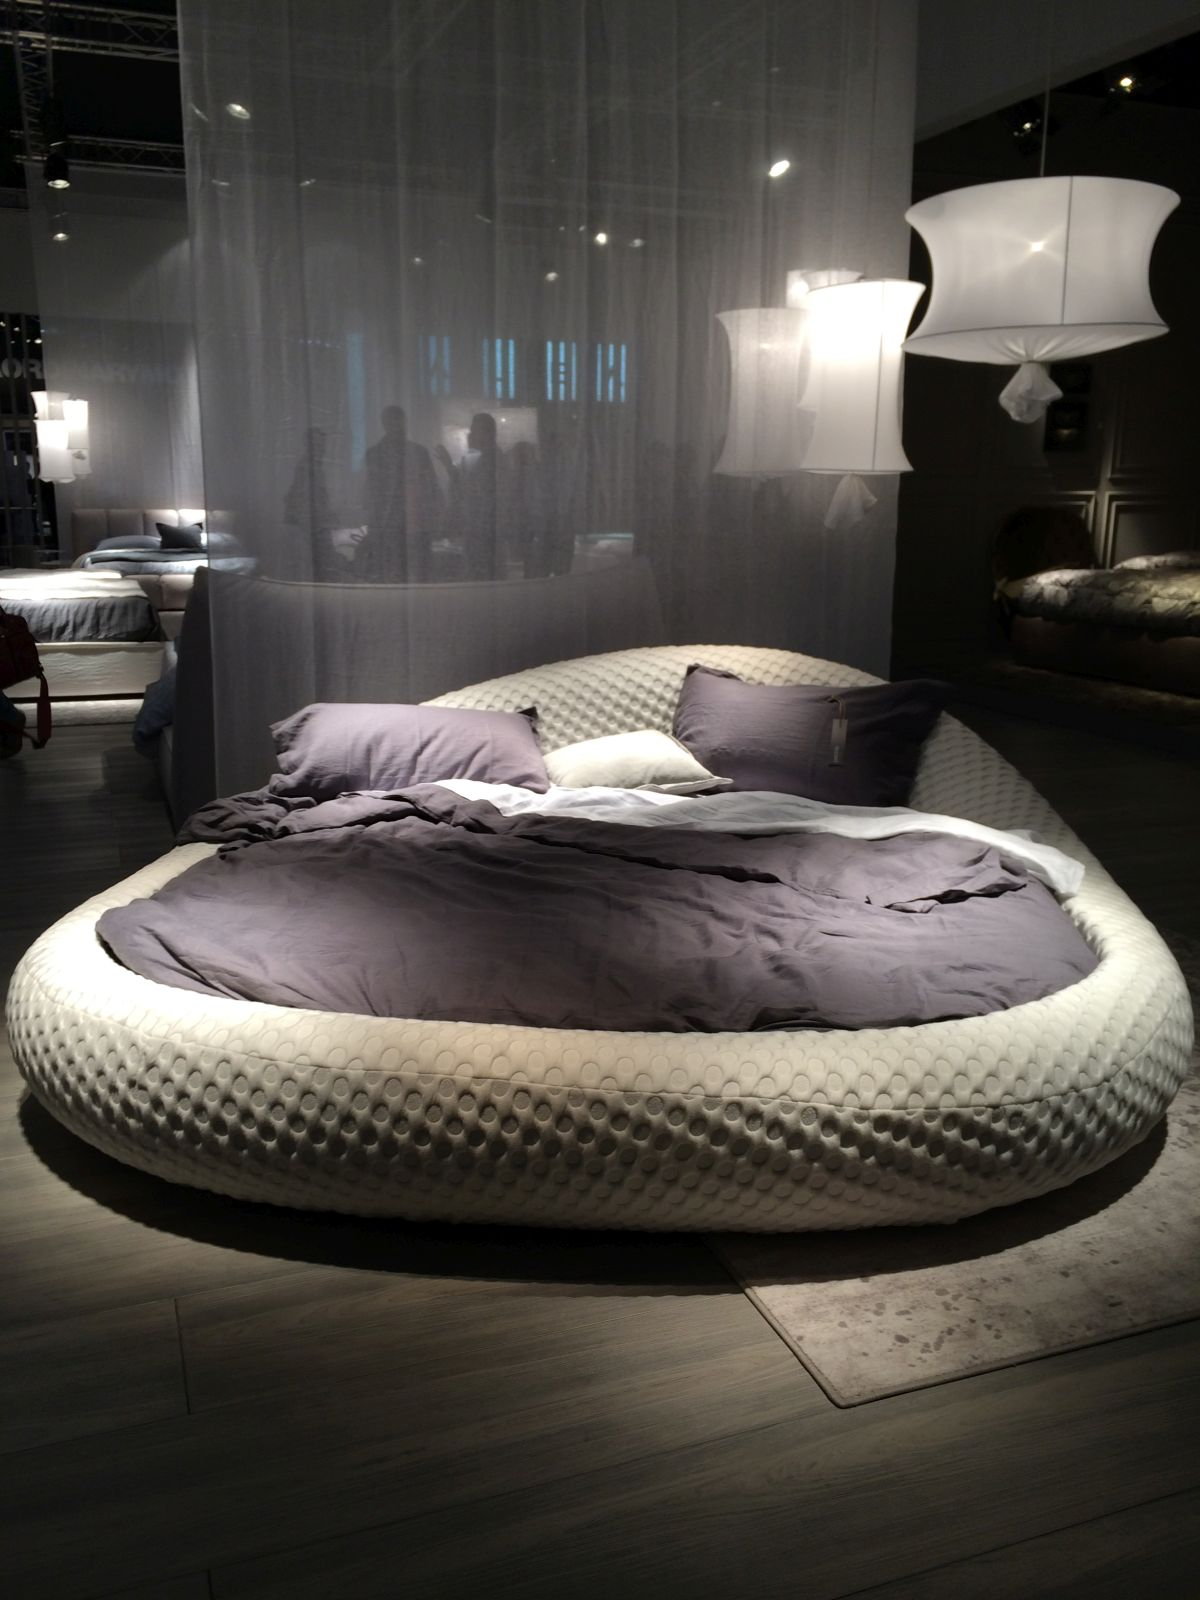 Round Beds | Ikea Round Bed For Sale | Cheap Round Beds For Sale